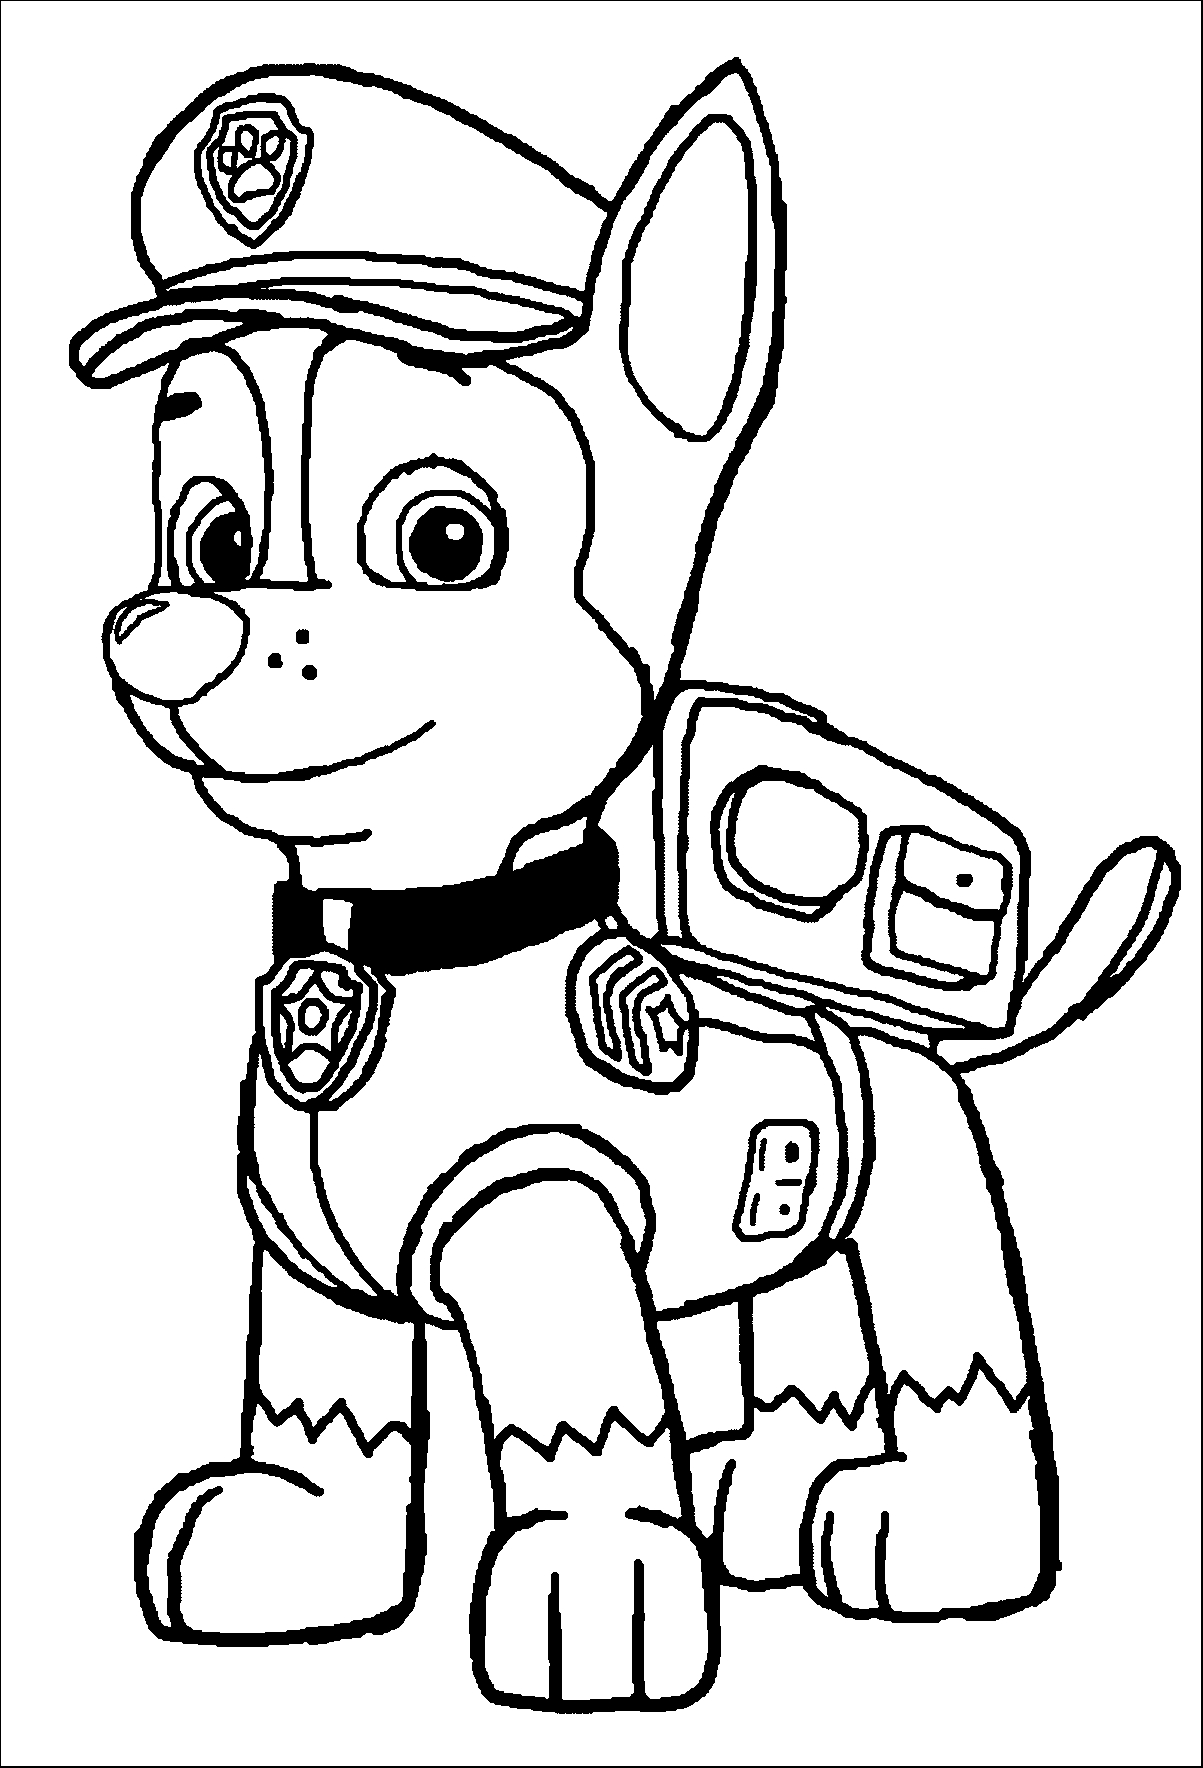 chase coloring page - paw patrol coloring page chase